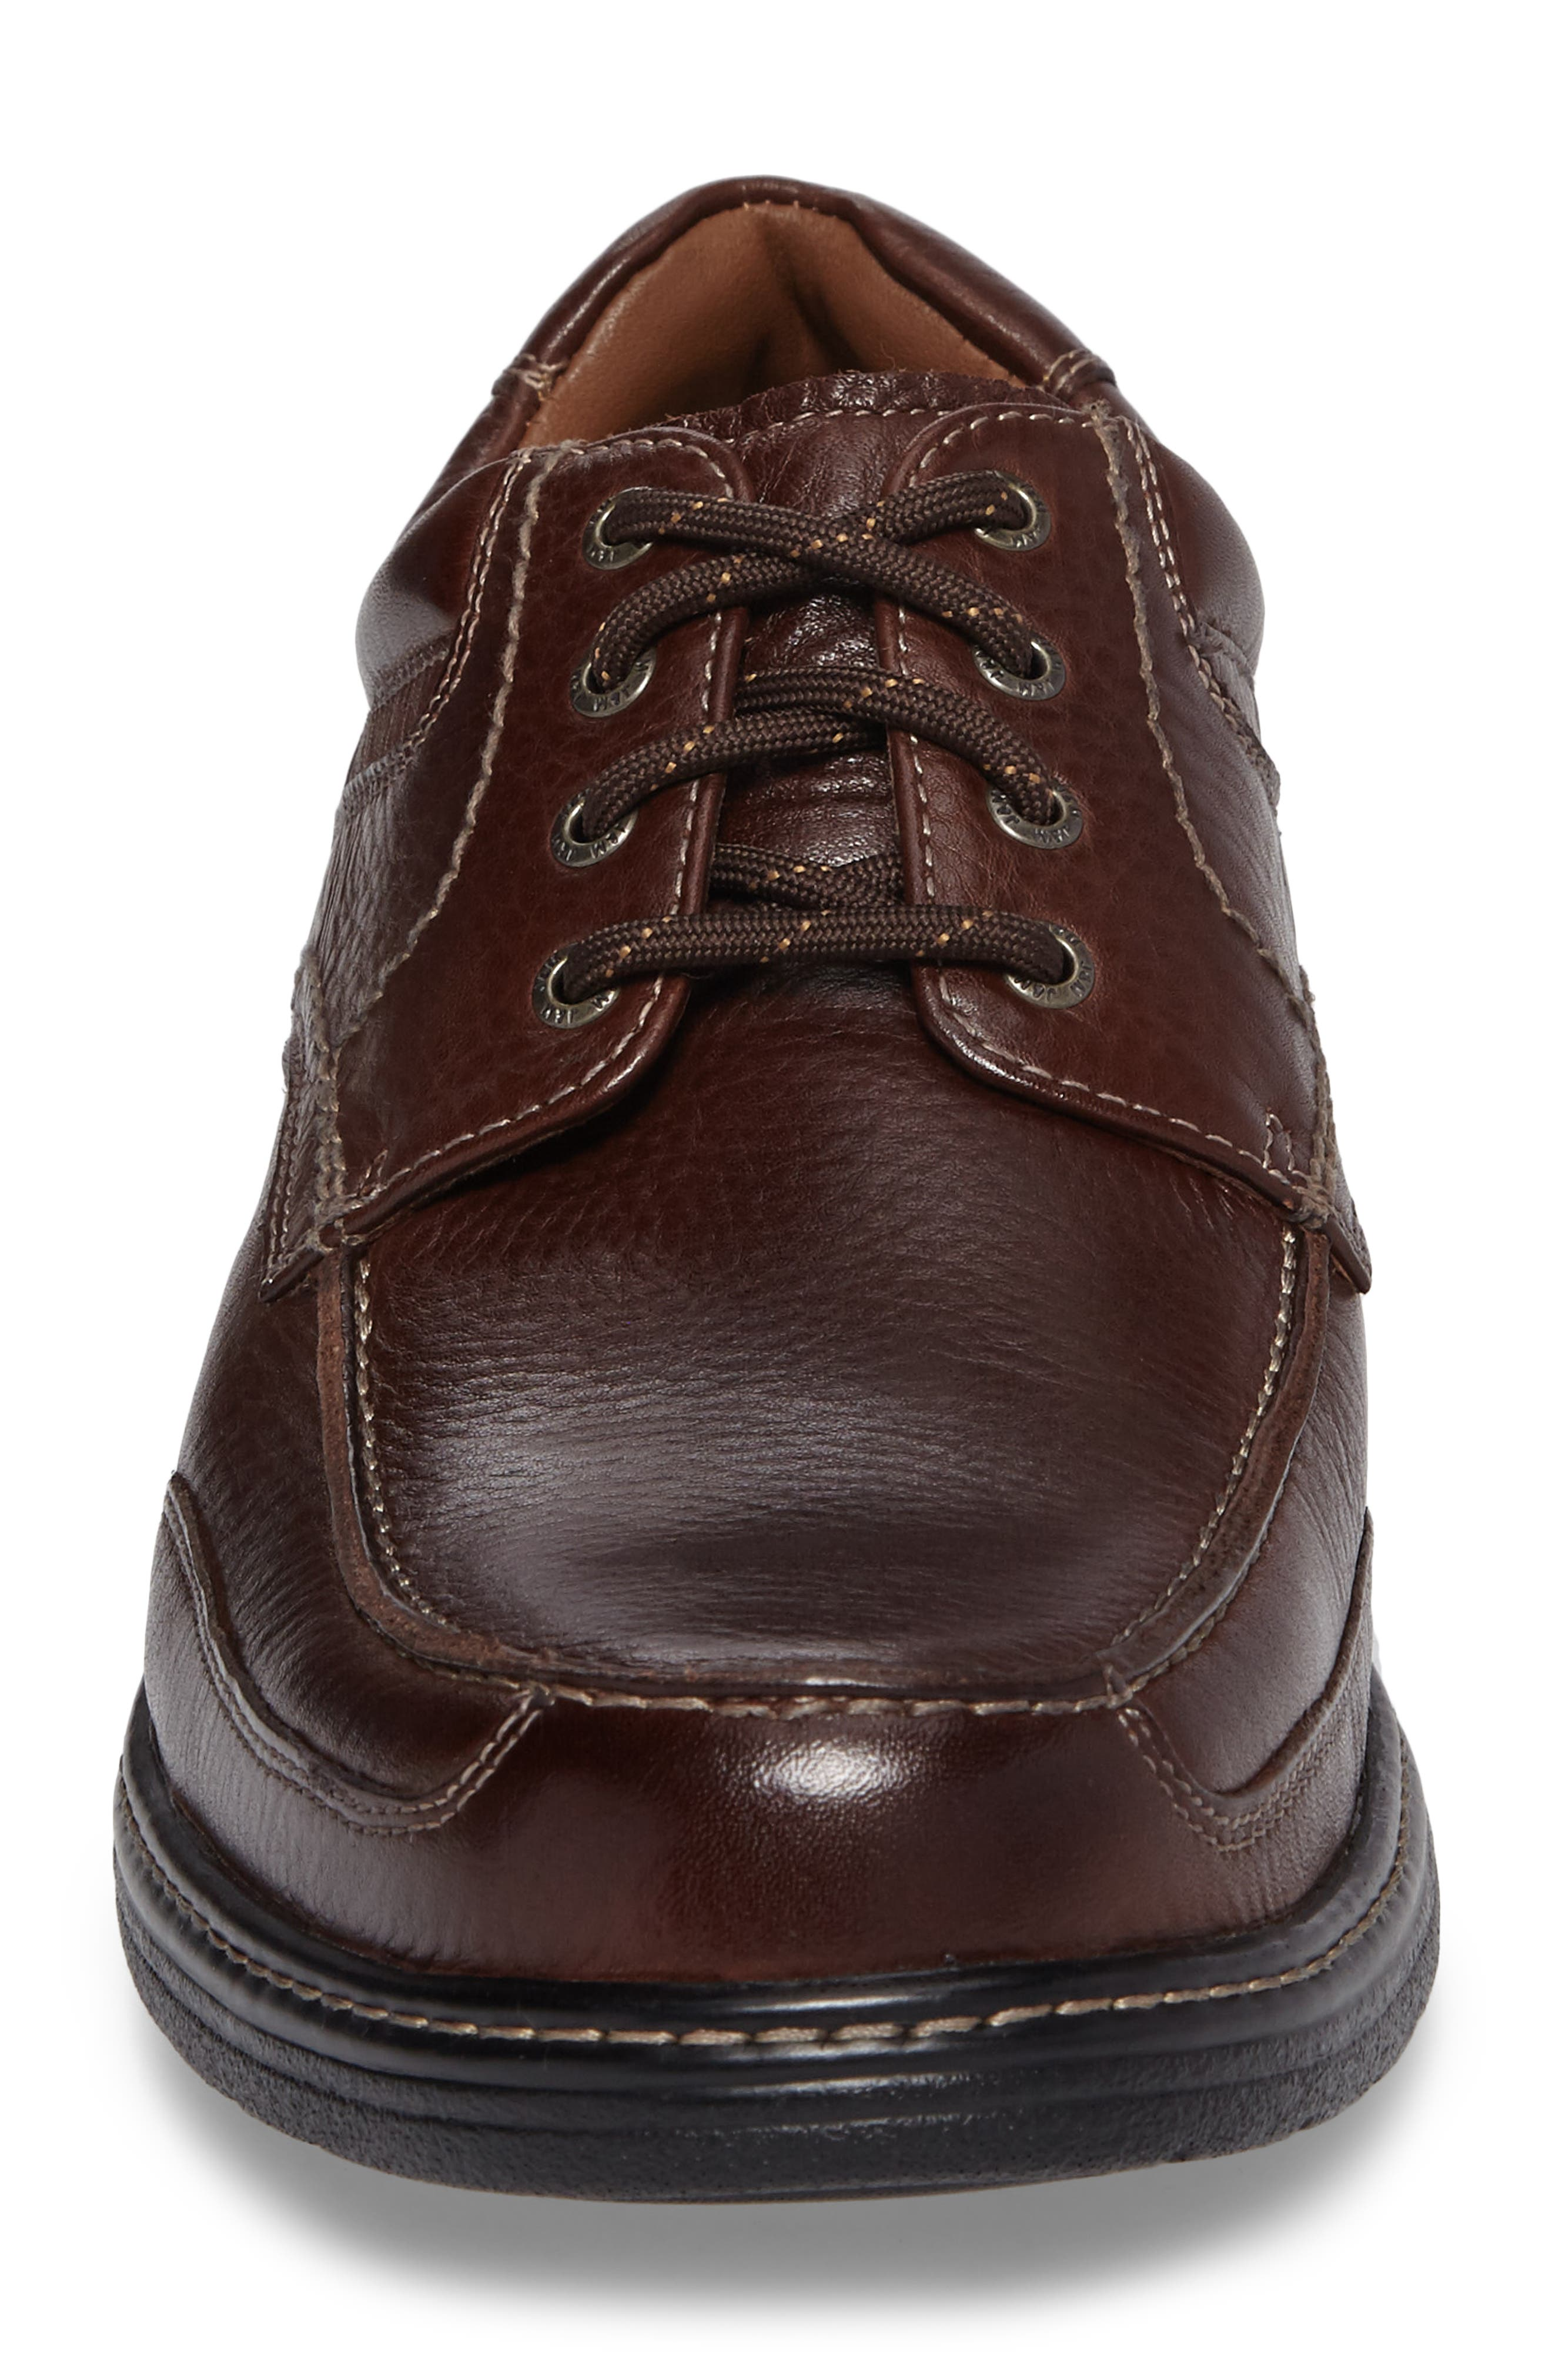 Windham Waterproof Moc Toe Derby,                             Alternate thumbnail 4, color,                             MAHOGANY